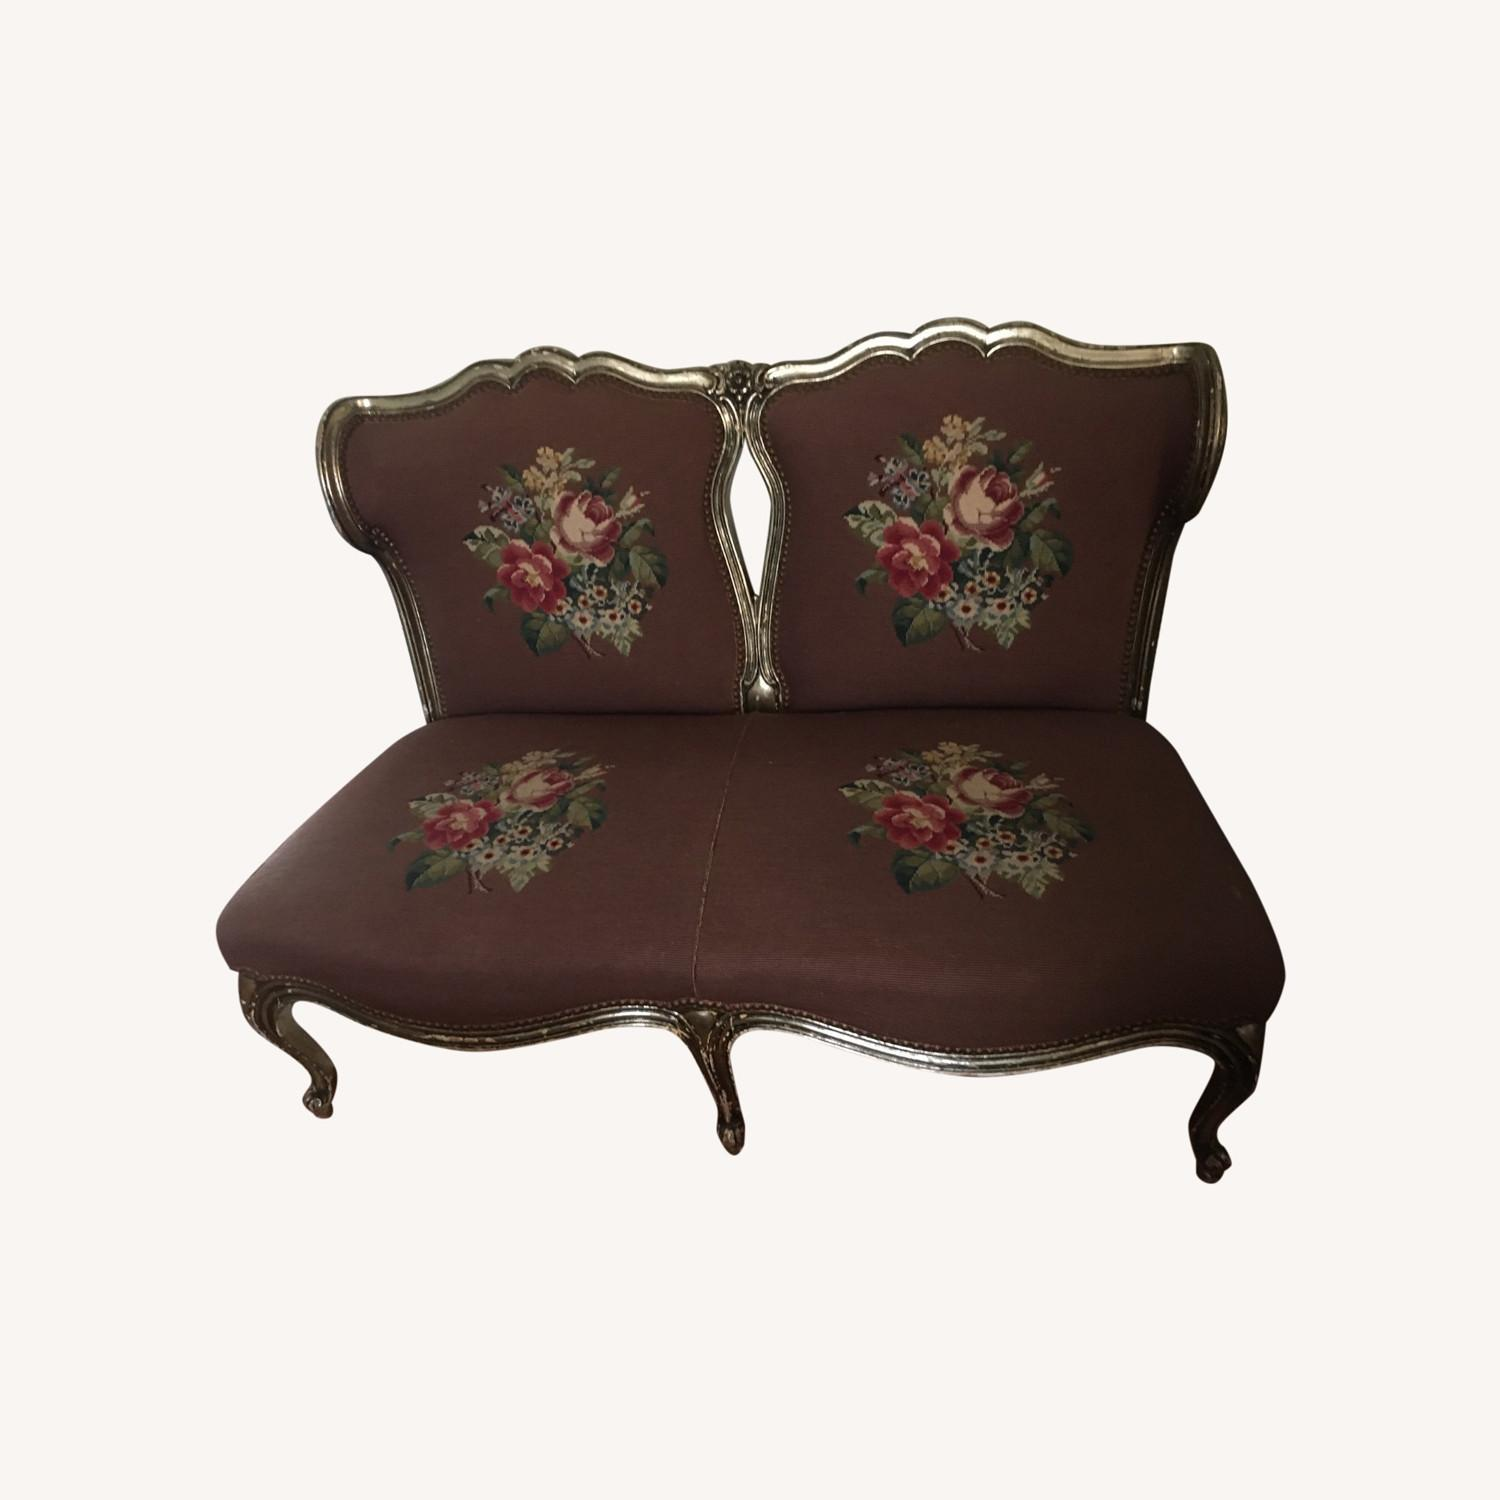 Taylor Made Needlepoint Floral Fabric Loveseat - image-0